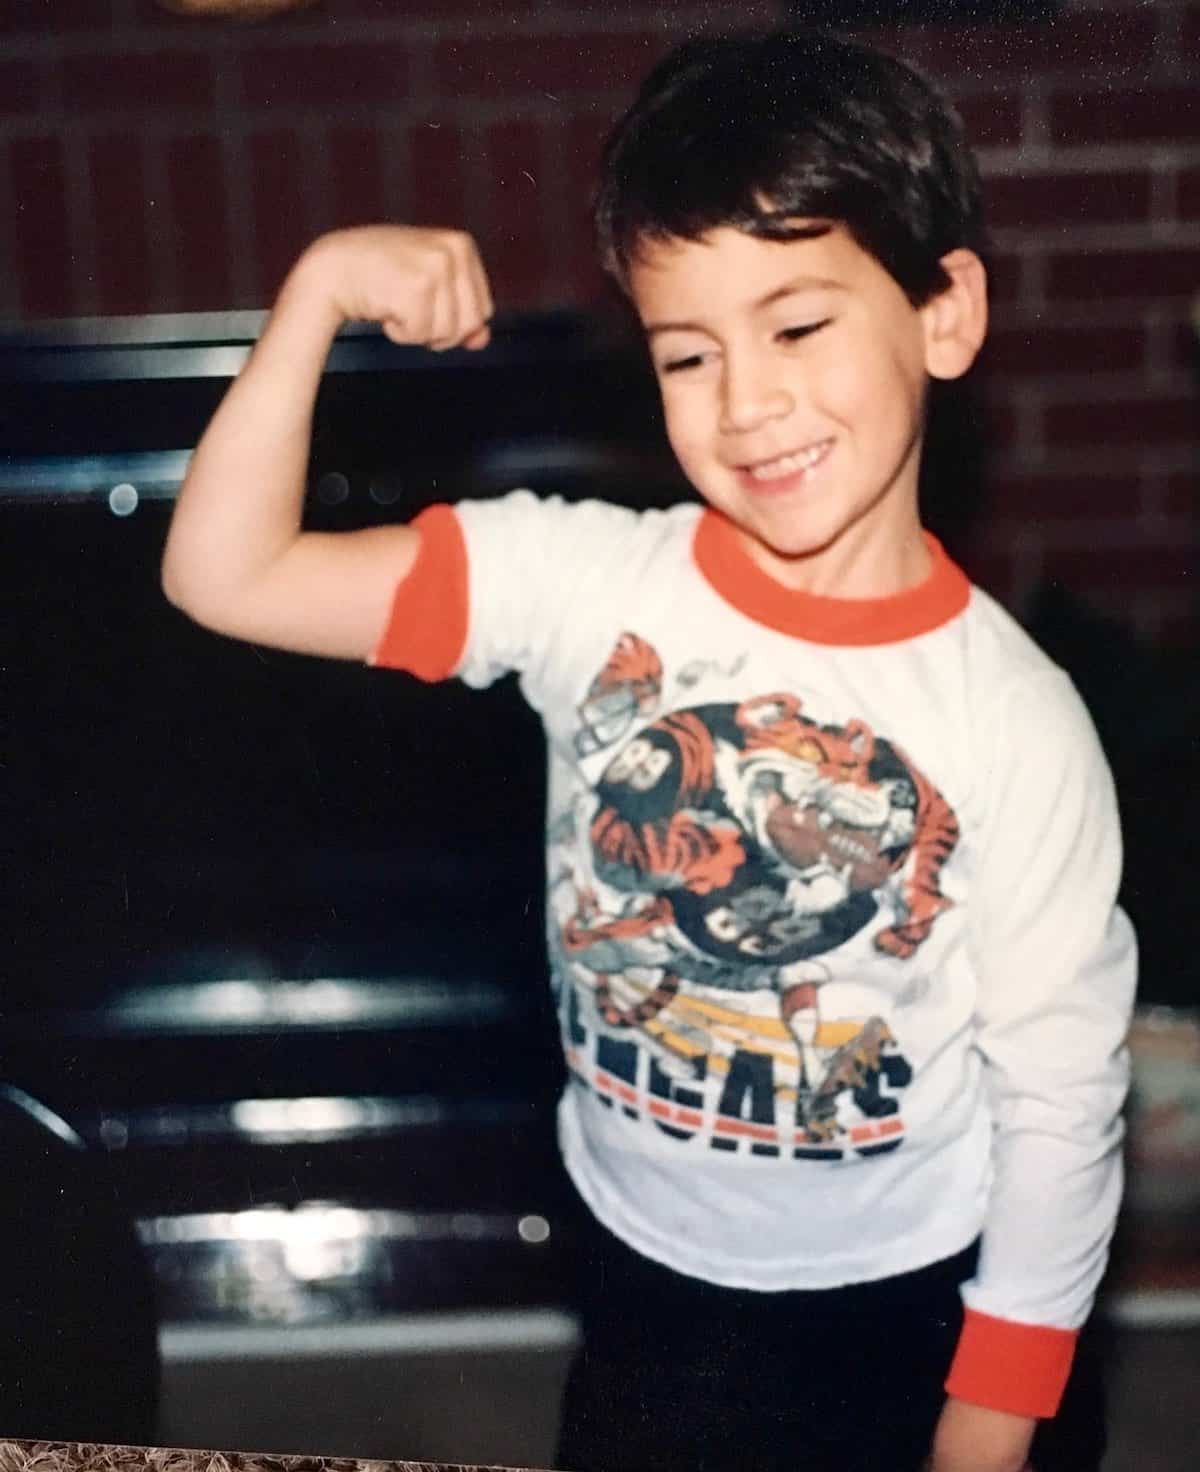 Will flexing his muscles